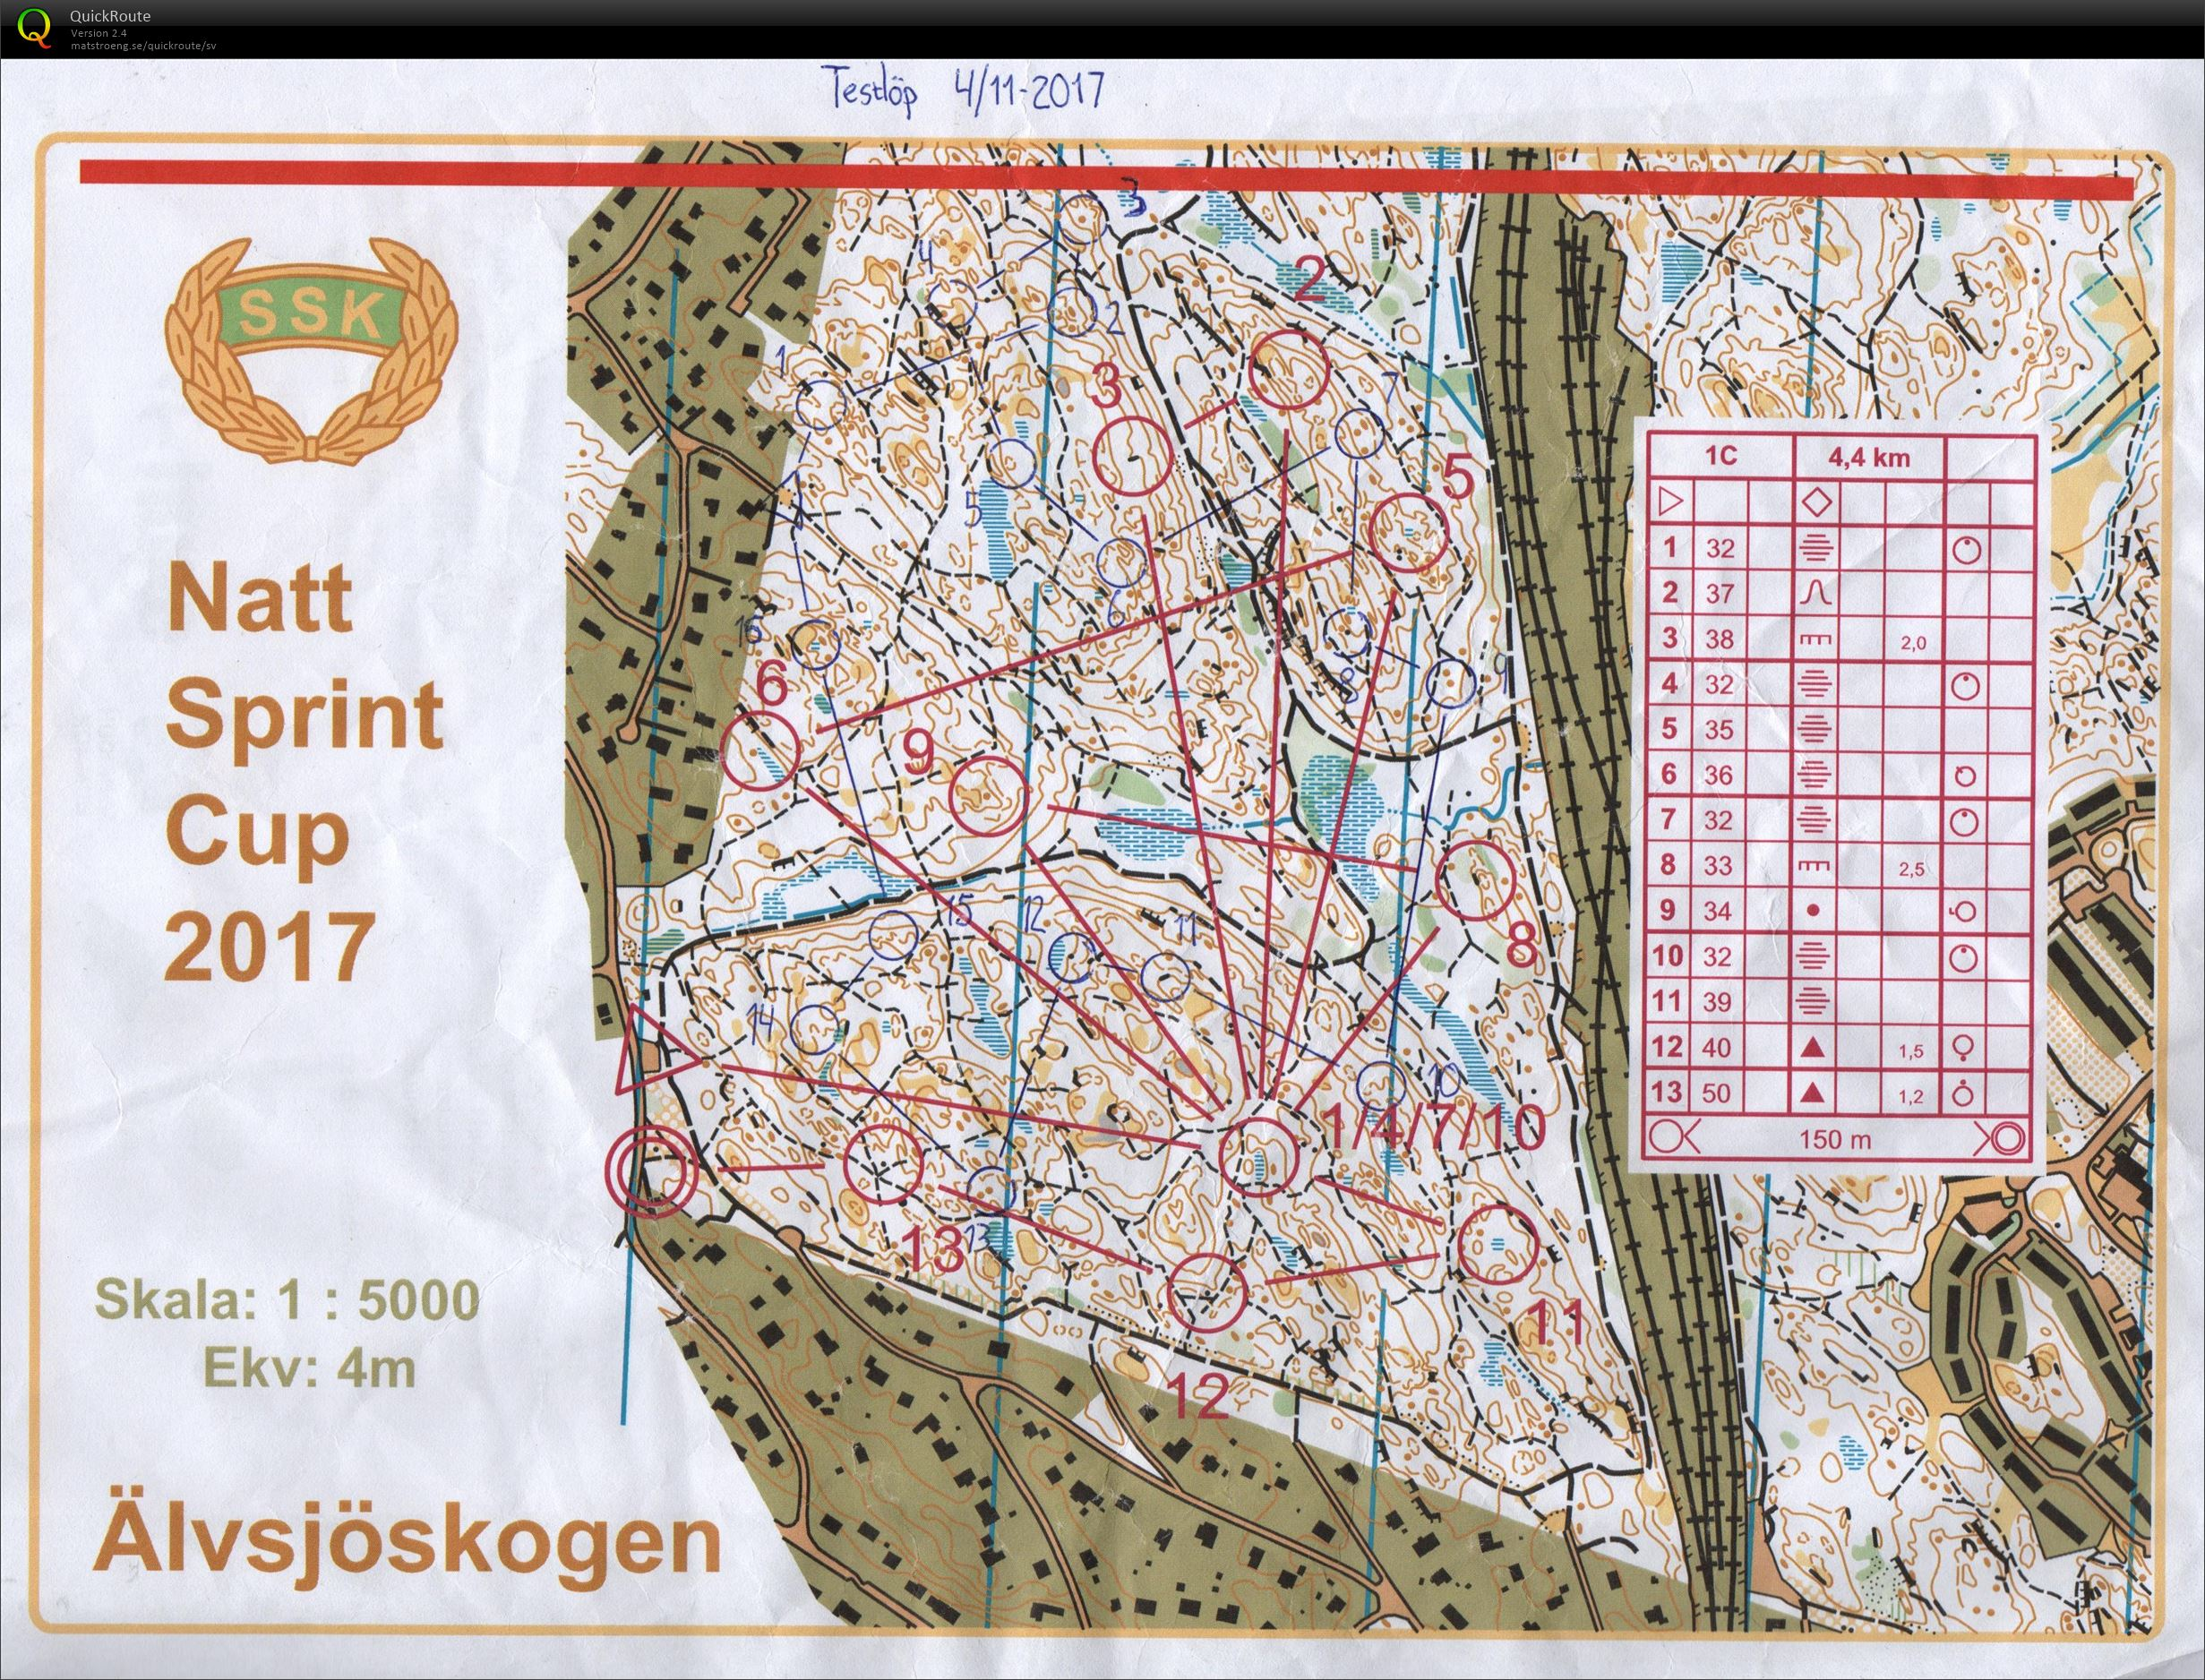 Kort testl    p     lvsj    skogen   November 4th 2017   Orienteering Map     View map without route